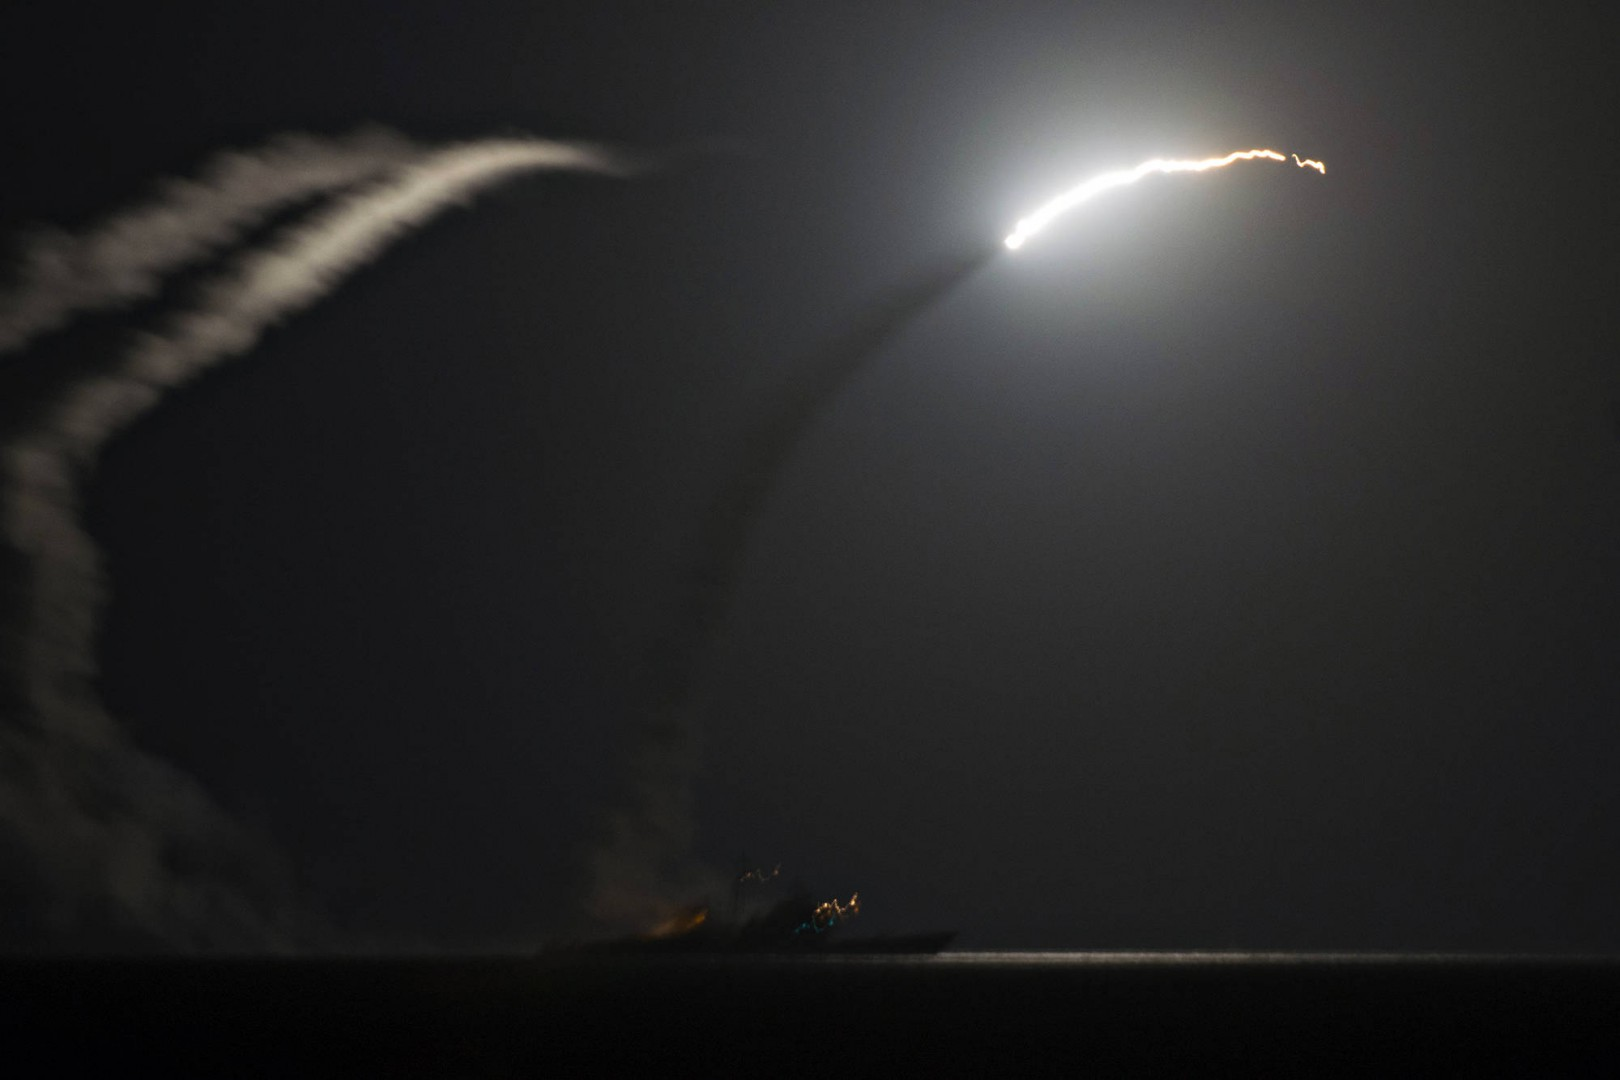 APRIL 6, 2017, FILE PHOTO, PRESIDENT TRUMP ORDERED A MASSIVE MILITARY STRIKE ON A SYRIAN AIR BASE IN RETALIATION FOR A BARBARIC CHEMICAL ATTACK HE BLAMED ON SYRIA S PRESIDENT. NAVY GUN SHIPS USS PORTER AND USS ROSS TARGETED SHAYRAT AIRFIELD IN SYRIA, WHERE PLANES THAT CARRIED OUT THE CHEMICAL ATTACK WHERE LAUNCHED FROM. PICTURED: SEPT. 23, 2014, USS GEORGE H.W. BUSH, UNITED STATES OF AMERICA, THE GUIDED MISSILE CRUISER USS PHILIPPINE SEA LAUNCHES A TOMAHAWK CRUISE MISSILE DURING AN ATTACK ON ISIS TARGETS IN SYRIA SEPTEMBER 23, 2014 IN THE PERSIAN GULF SEPT. 23, 2014. THE SHIP IS PART OF THE USS GEORGE H.W. BUSH CARRIER STRIKE GROUP AND TOOK PART IN THE FIRST WAVE OF ATTACKS ON TARGETS IN SYRIA. (CREDIT IMAGE: (C) MCS1 ERIC GARST/U.S. NAVY/ZUMA WIRE/ZUMAPRESS.COM) ZSELECT, ZAGENCY, USN, TOMAHAWK, CRUISE, MISSILE, LAUNCH, USS, PHILIPPINE, SEA, MILITARY, ARMED, FORCES, ISIS, ISIL, ISLAMIC, STATE, SYRIA, IRAQ, WAR, COMBAT, MISSION, ATTACK, MIDDLE, EAST, MIDEAST, WARFARE, US, USA, AMERICAN, UNITED, STATES, NIGHT, OUTSIDE, NIGHTTIME, COPY, SPACE, COPYSPACE, HORIZONTAL, NAVY, ZWIRE, TOMAHAWK_MISSILE_20138, JPG, 20140923_ZAA_P138_026, 20170406_SHA_Z03_923.JPG, 20170406_SHA_Z03_923.JPG